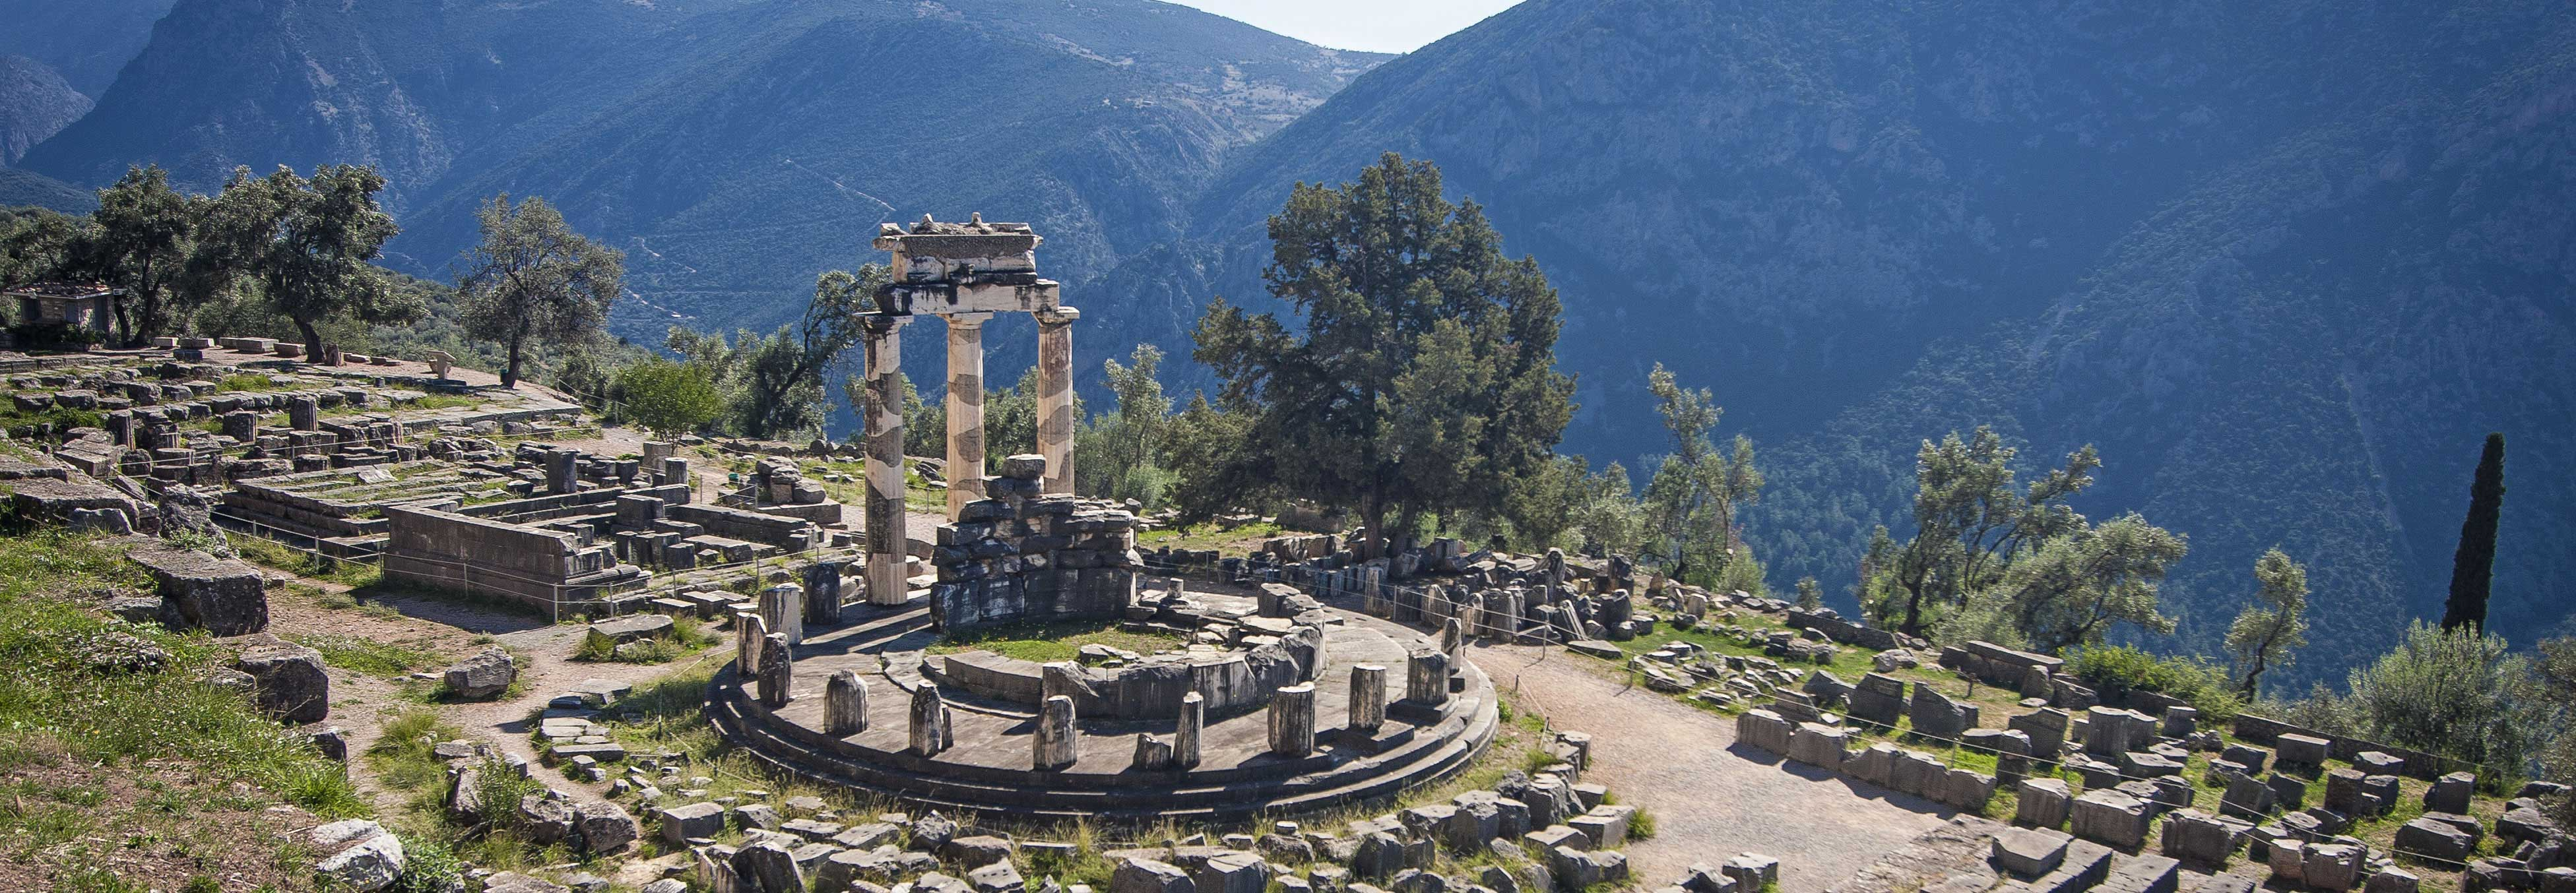 Northern Greece travel - Luxury Greece Holiday with Ker & Downey